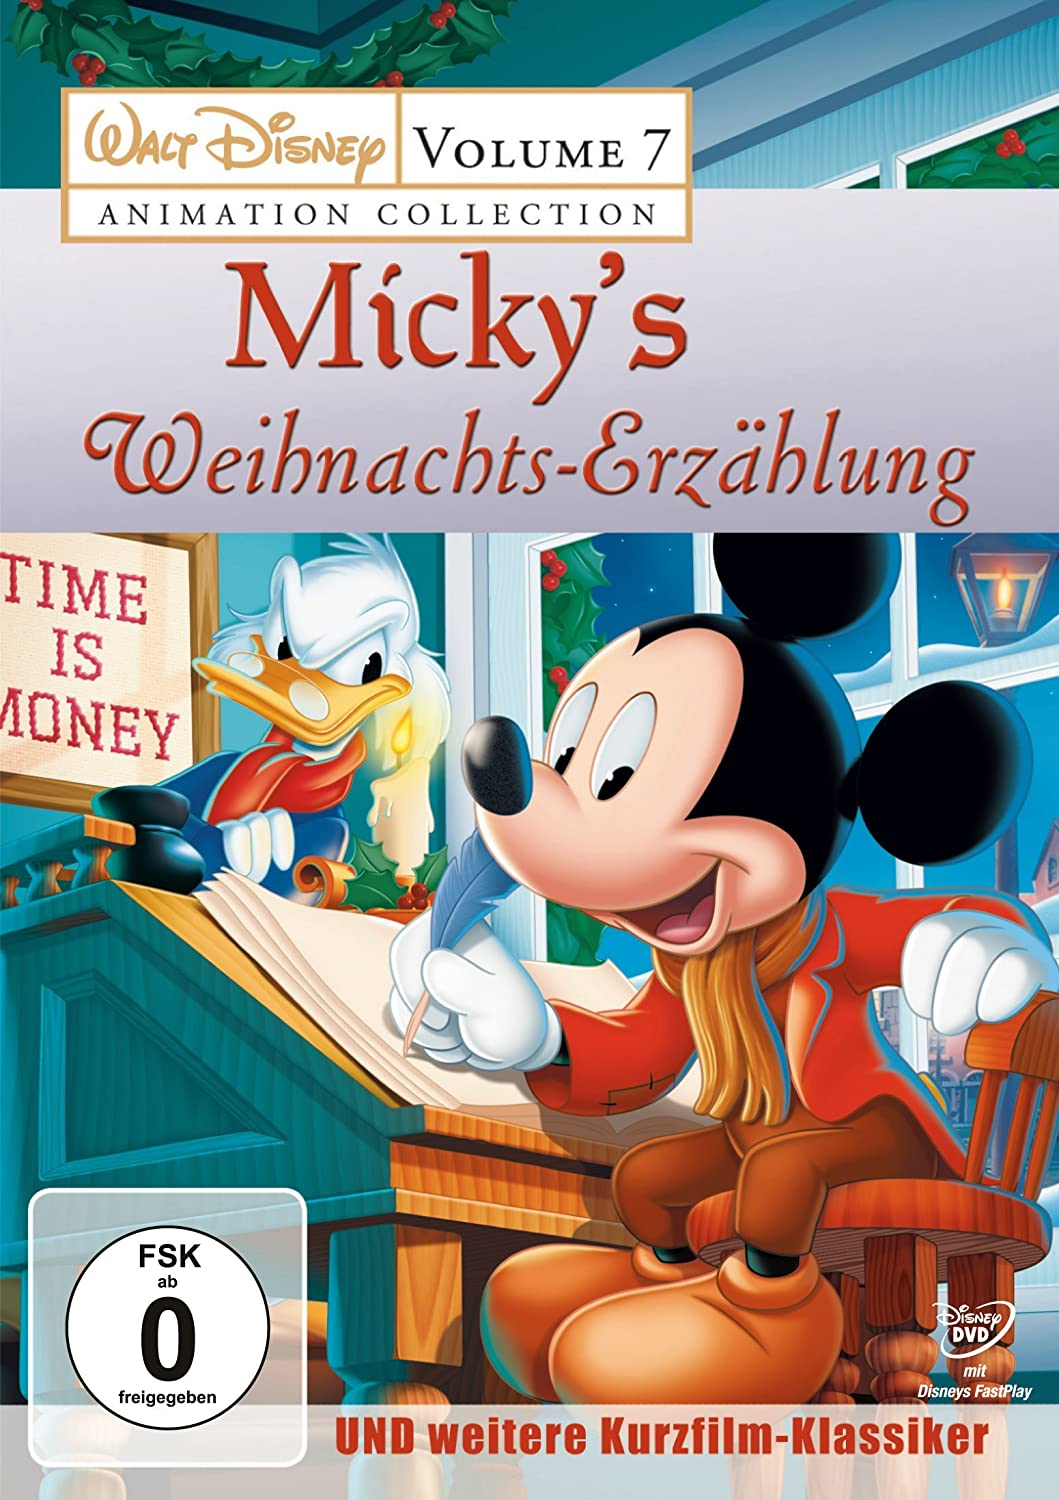 Mickys Weihnachts-Erzählung: Amazon.de: Mickey Mouse, -: DVD & Blu-ray